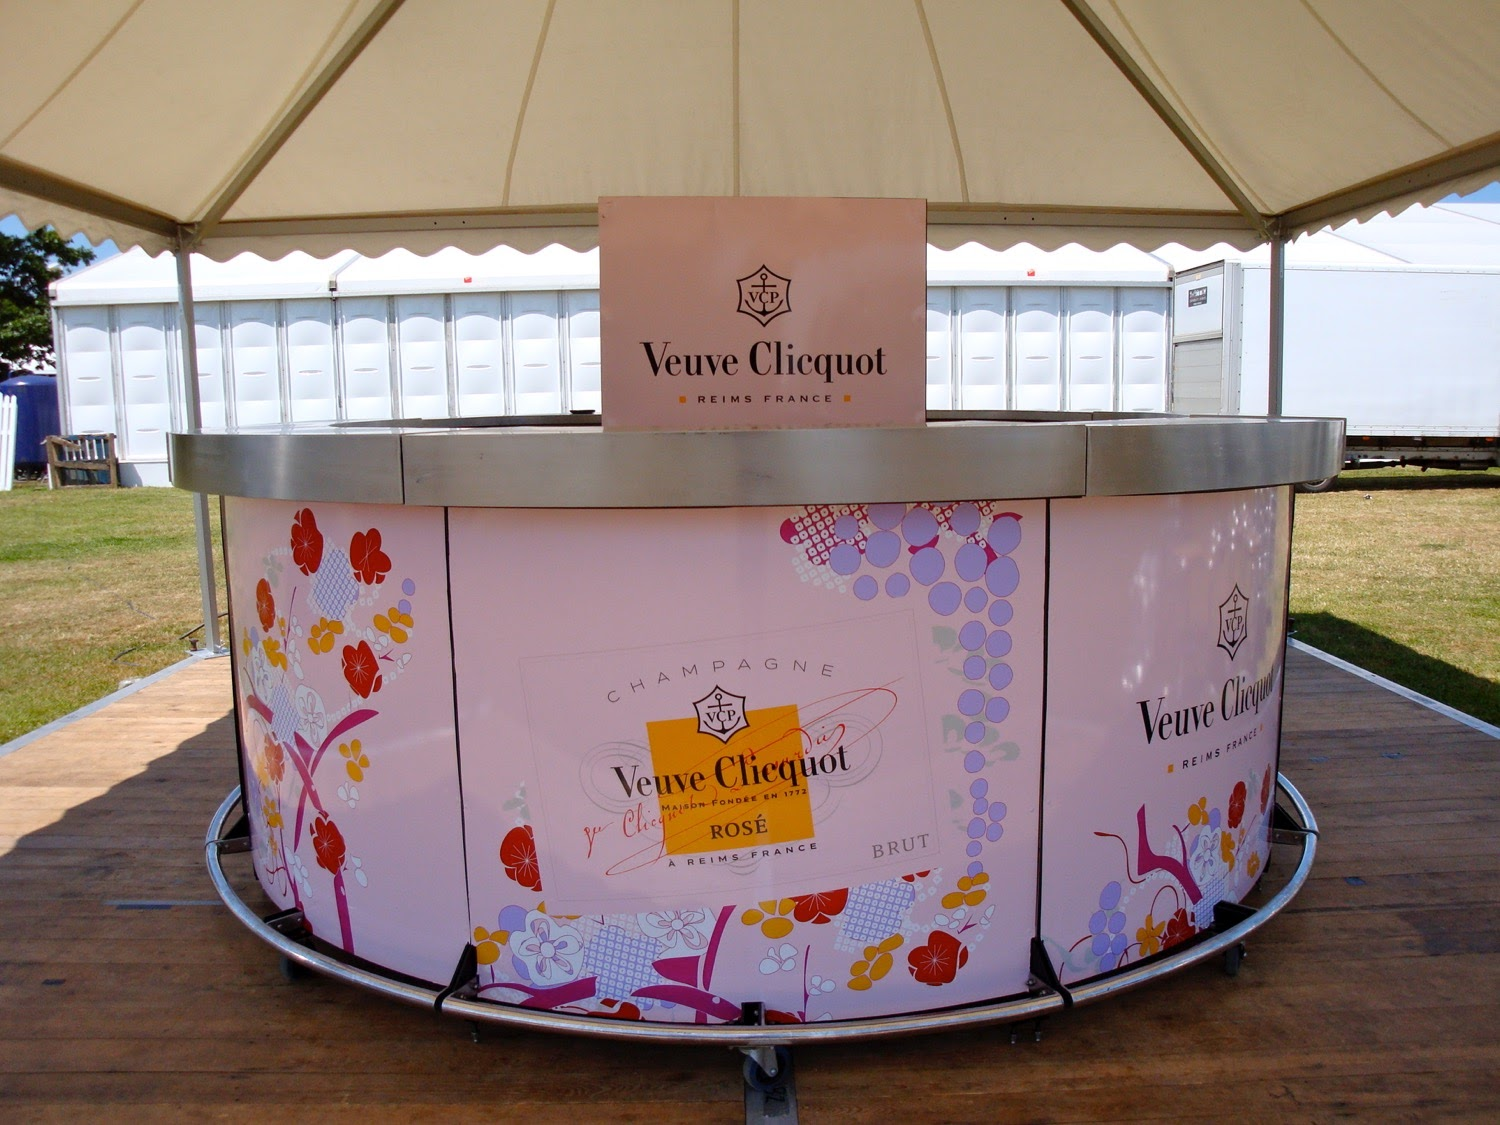 Veuve Clicquot branded round champagne bar